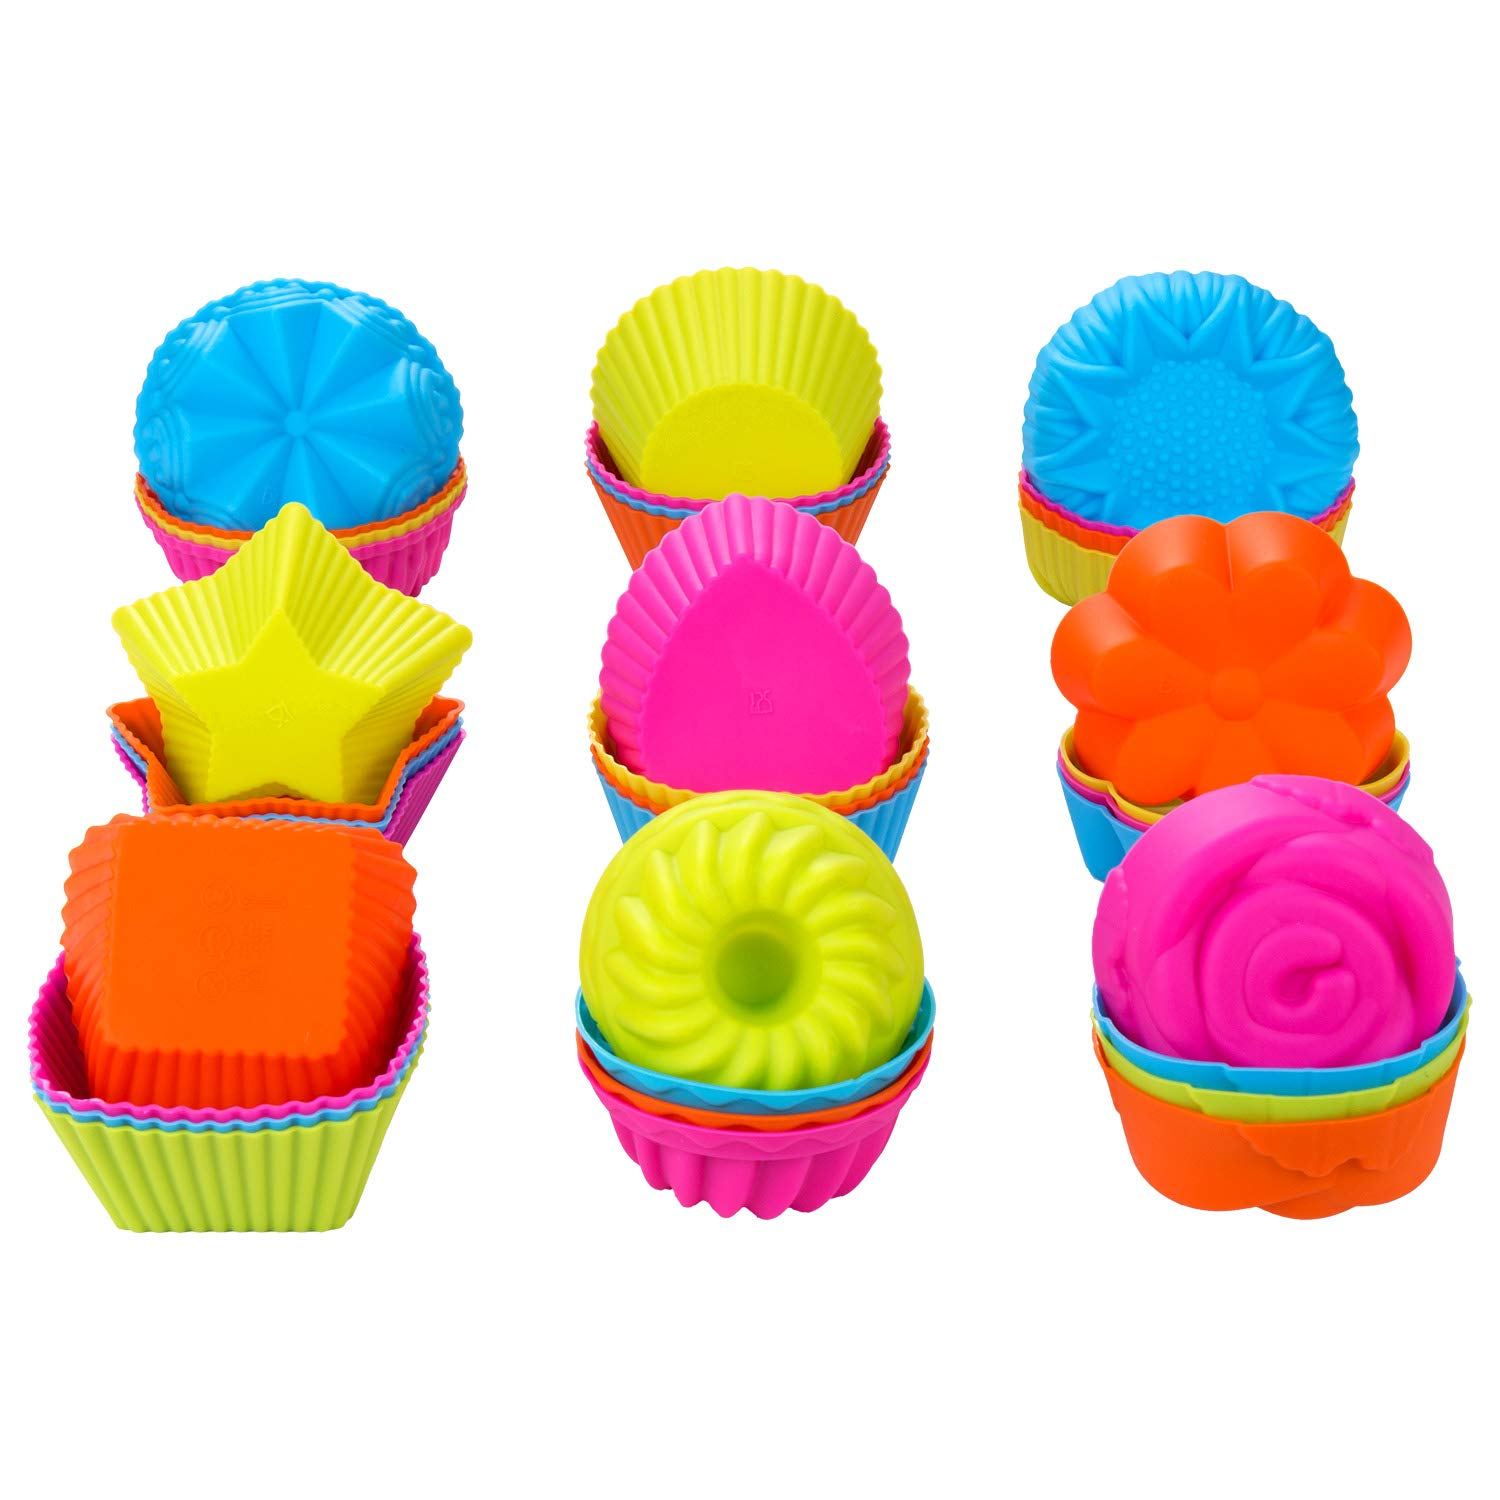 WARMWIND Silicone Muffin Cups, Food Grade Cupcake Baking Mold, 36-Pack Cake Cup Sets, Reusable Baking Cups, Non-Stick Cupcake Liners, Dishwasher Safe by WARMWIND (Image #1)